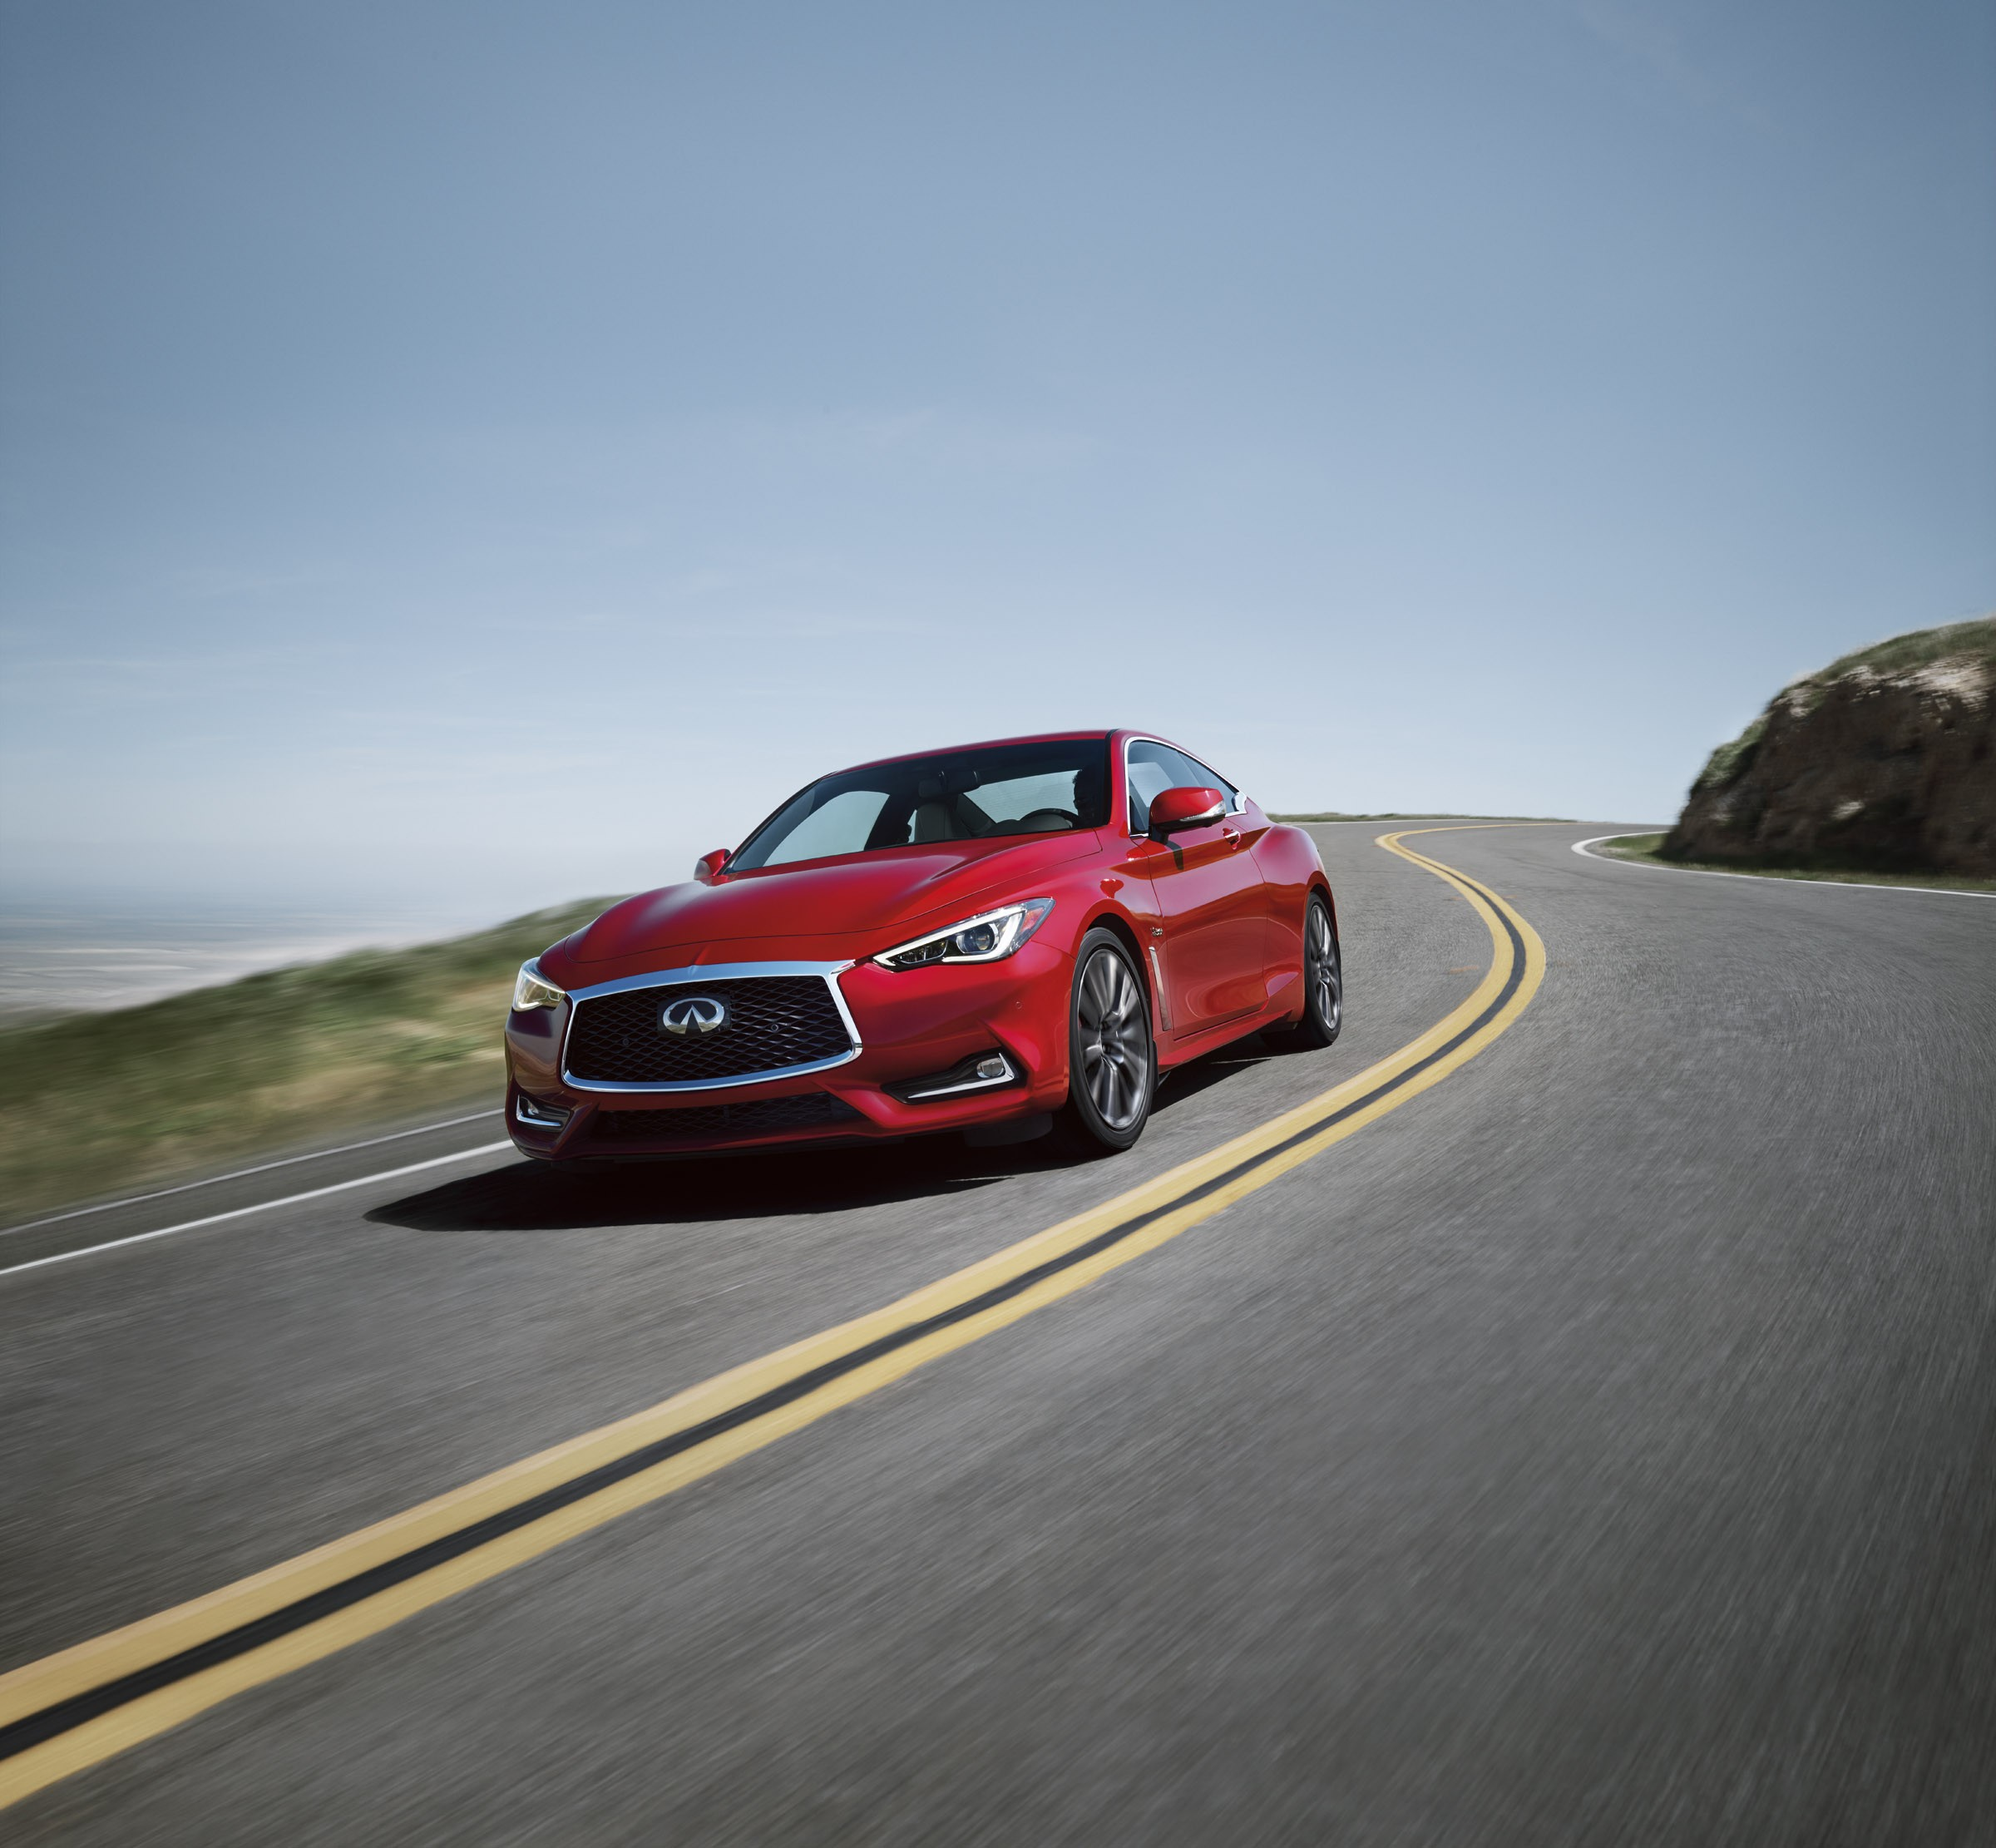 2017 Infiniti Q60 Suspension: Infiniti Q60 Convertible To Enter Production In Early 2017